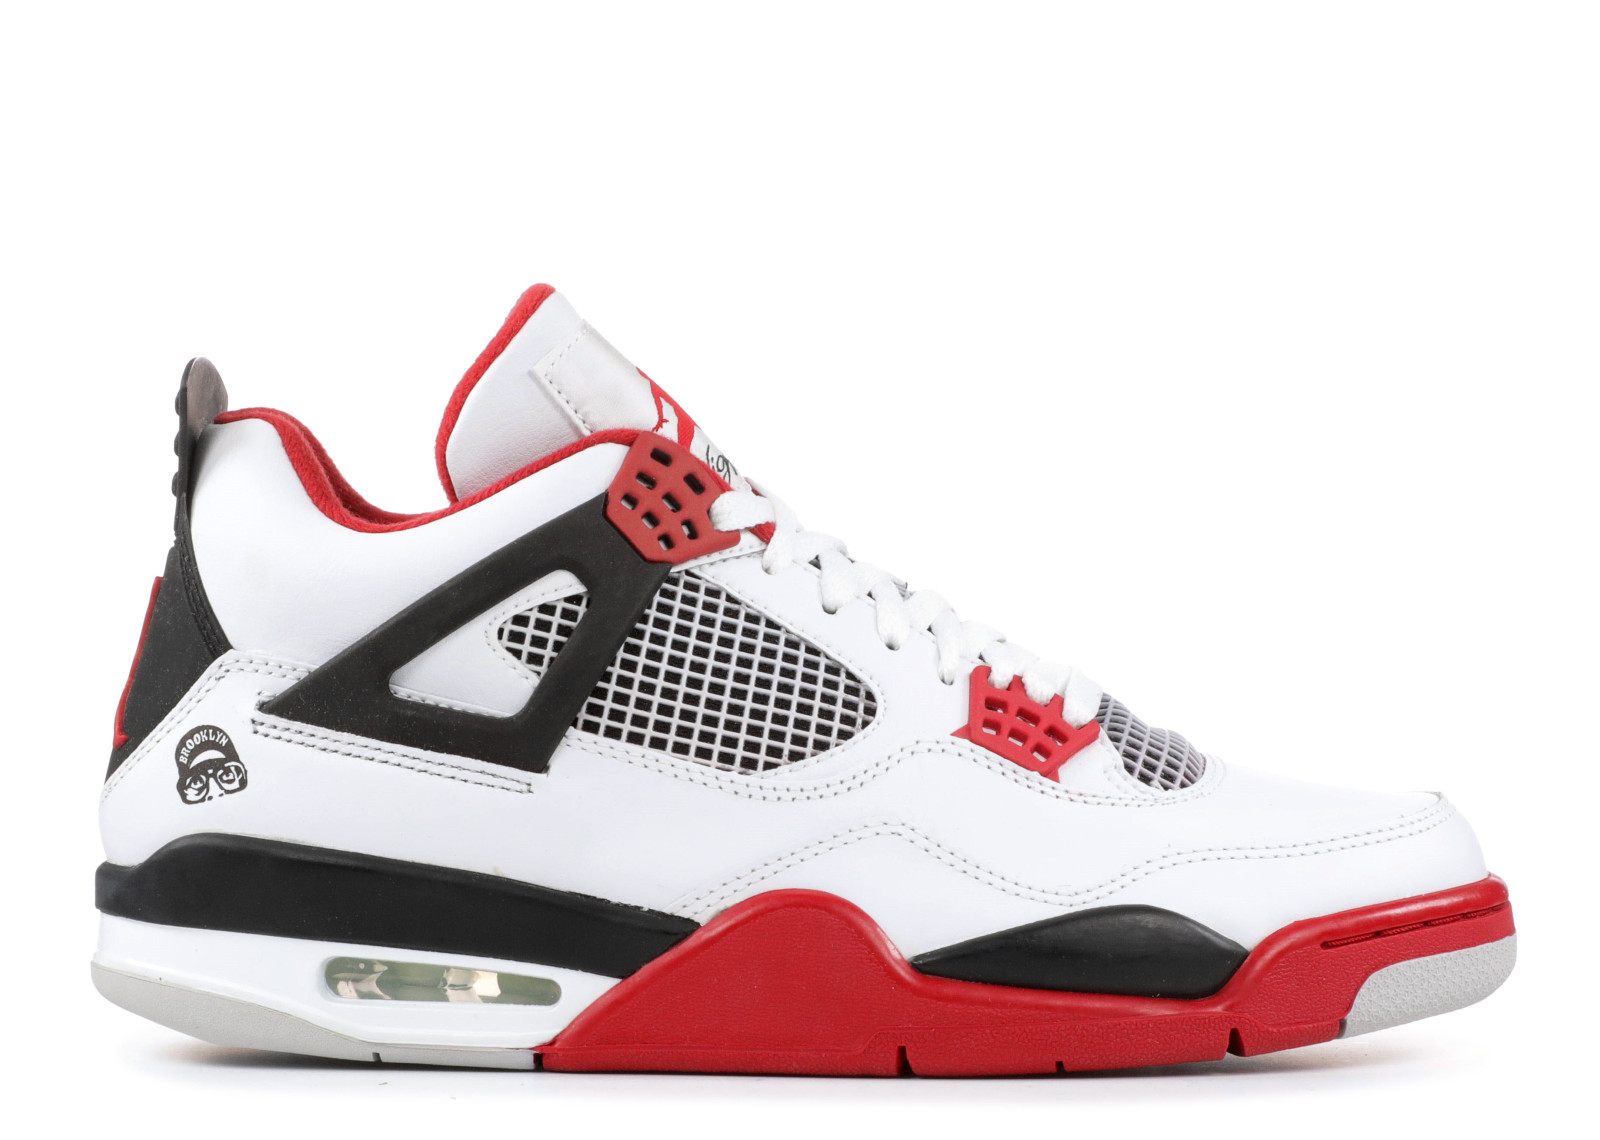 Air Jordan 4 Fire Red Mars Blackmon